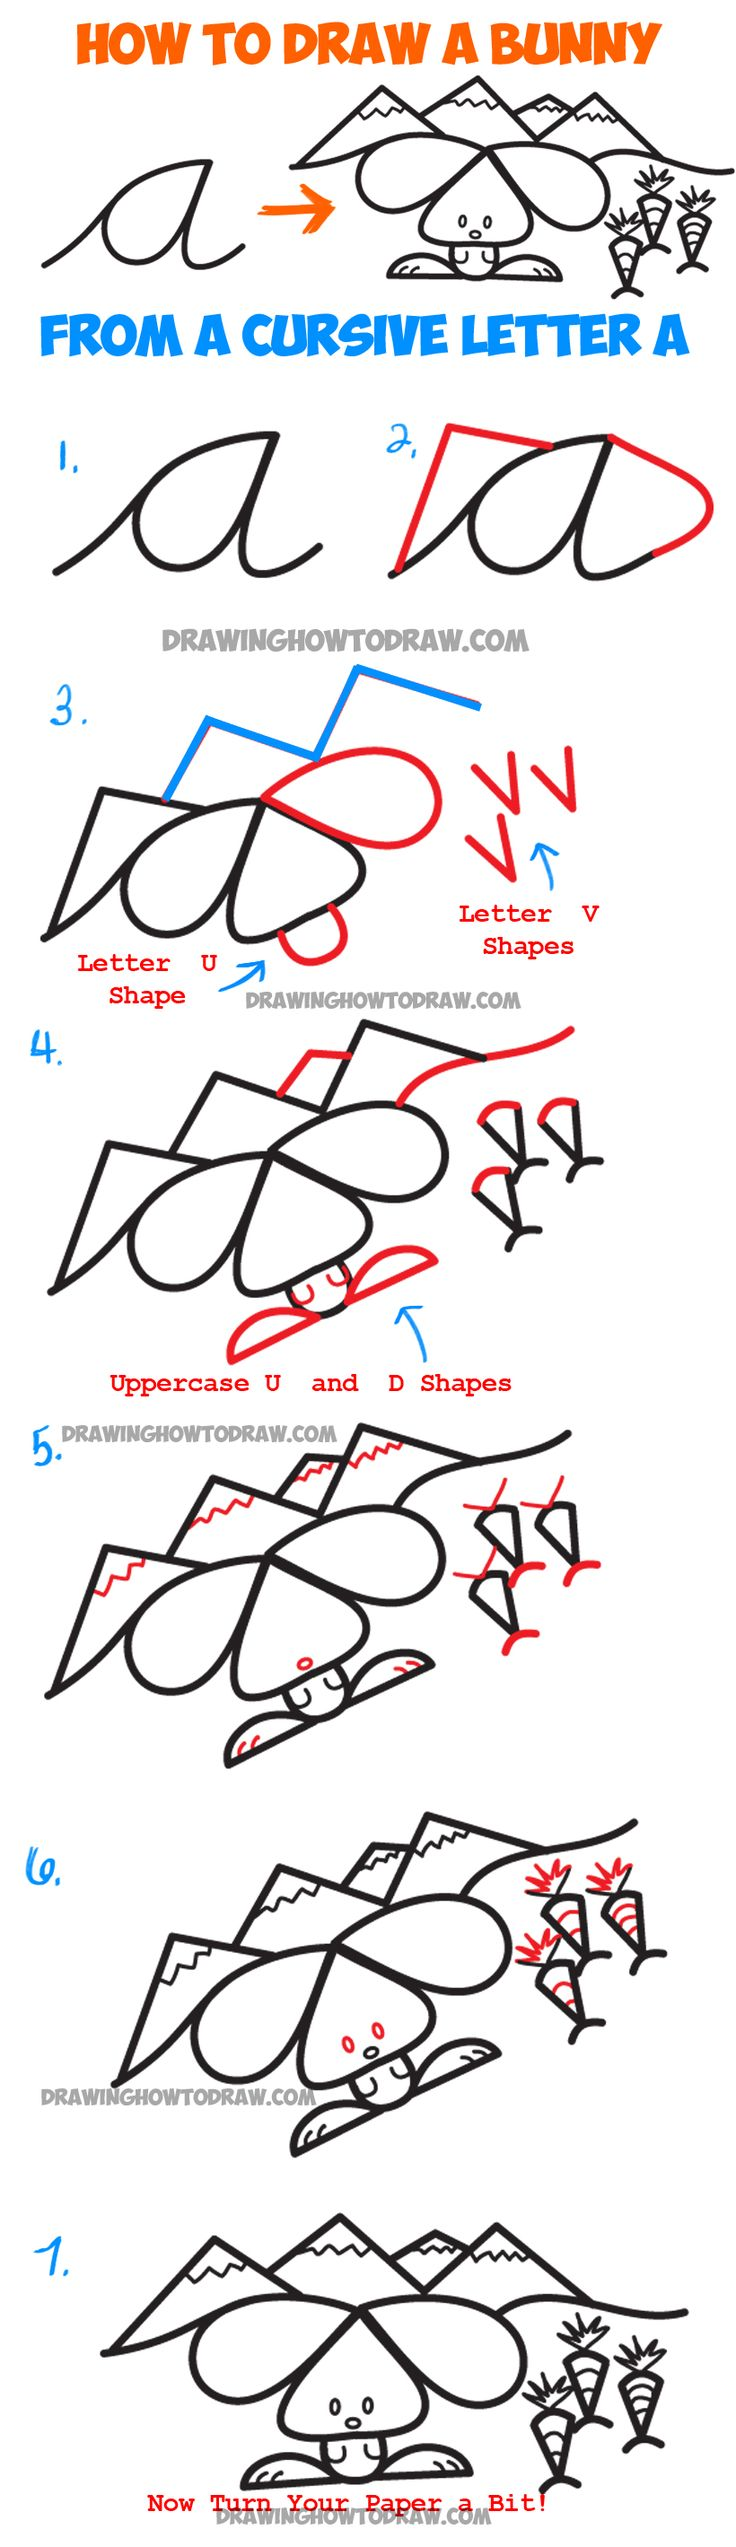 Worksheet Cursif Letters 1000 ideas about cursive letters on pinterest hand lettering fonts alphabet and calligraphy alphabet